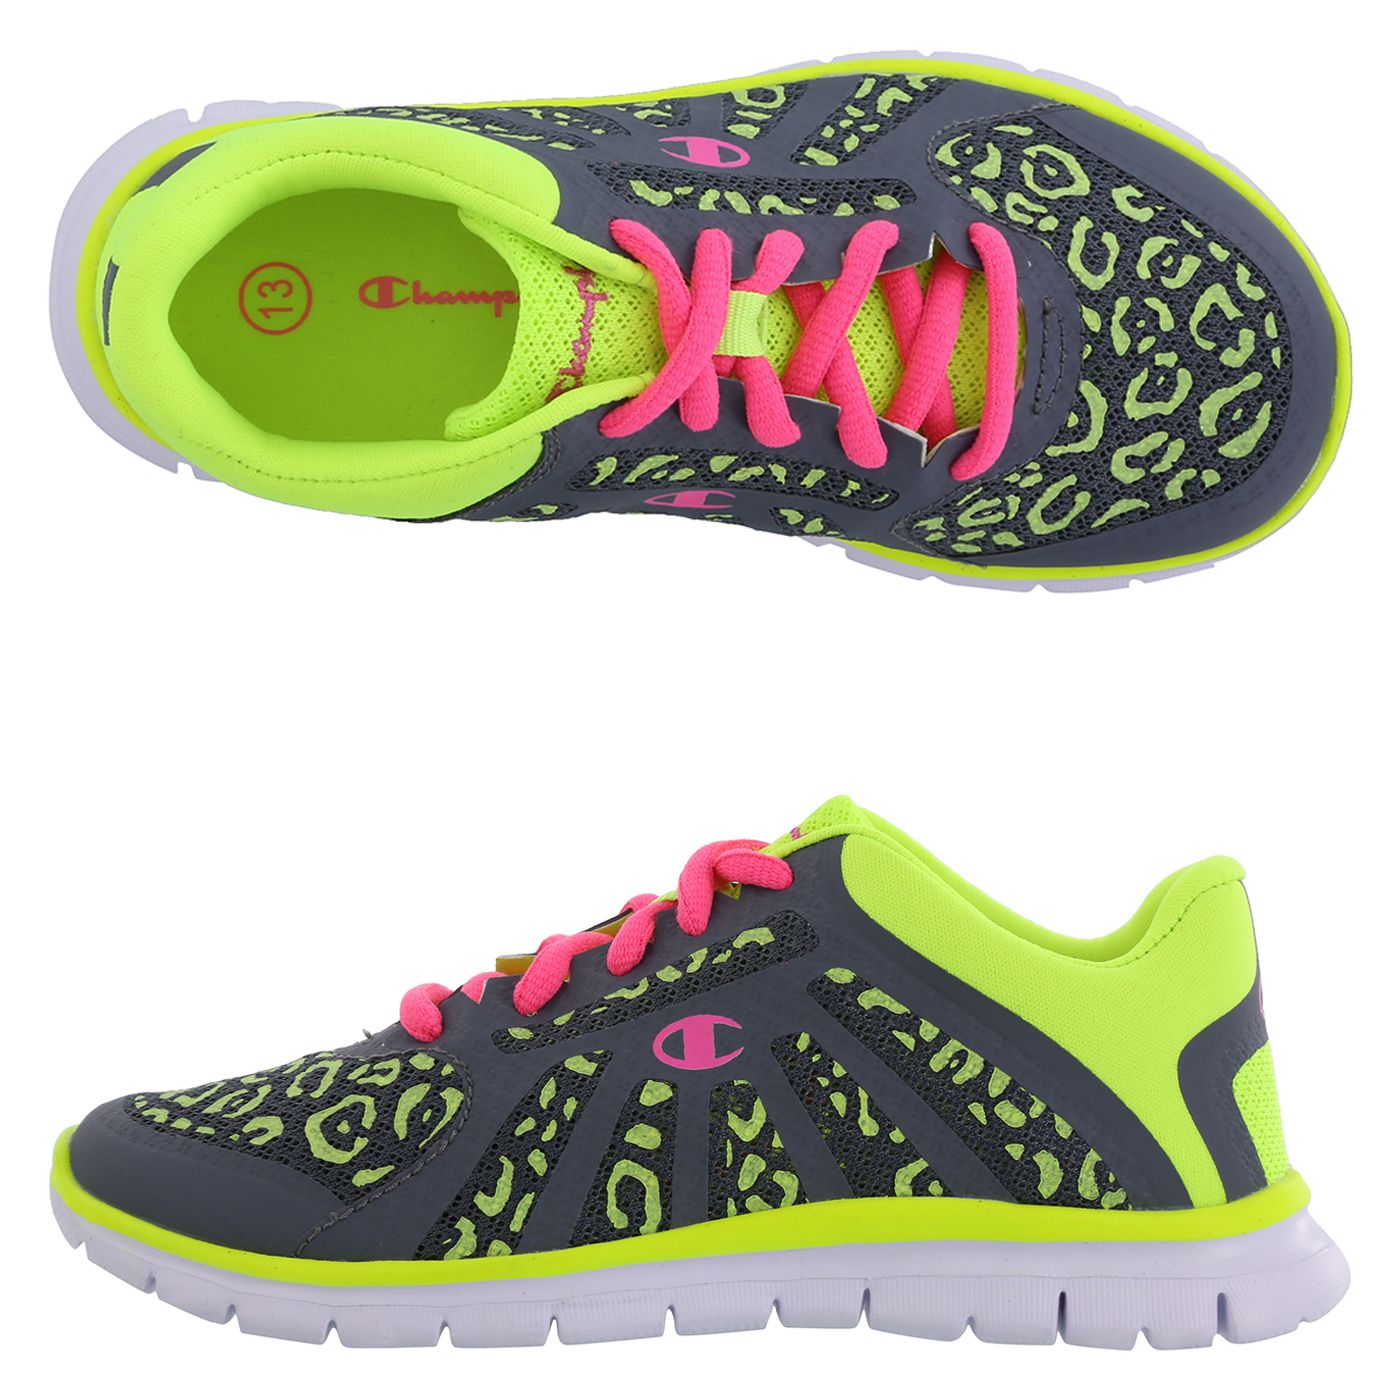 166391ffe My new shoes!! Girls Gusto Glow Runner